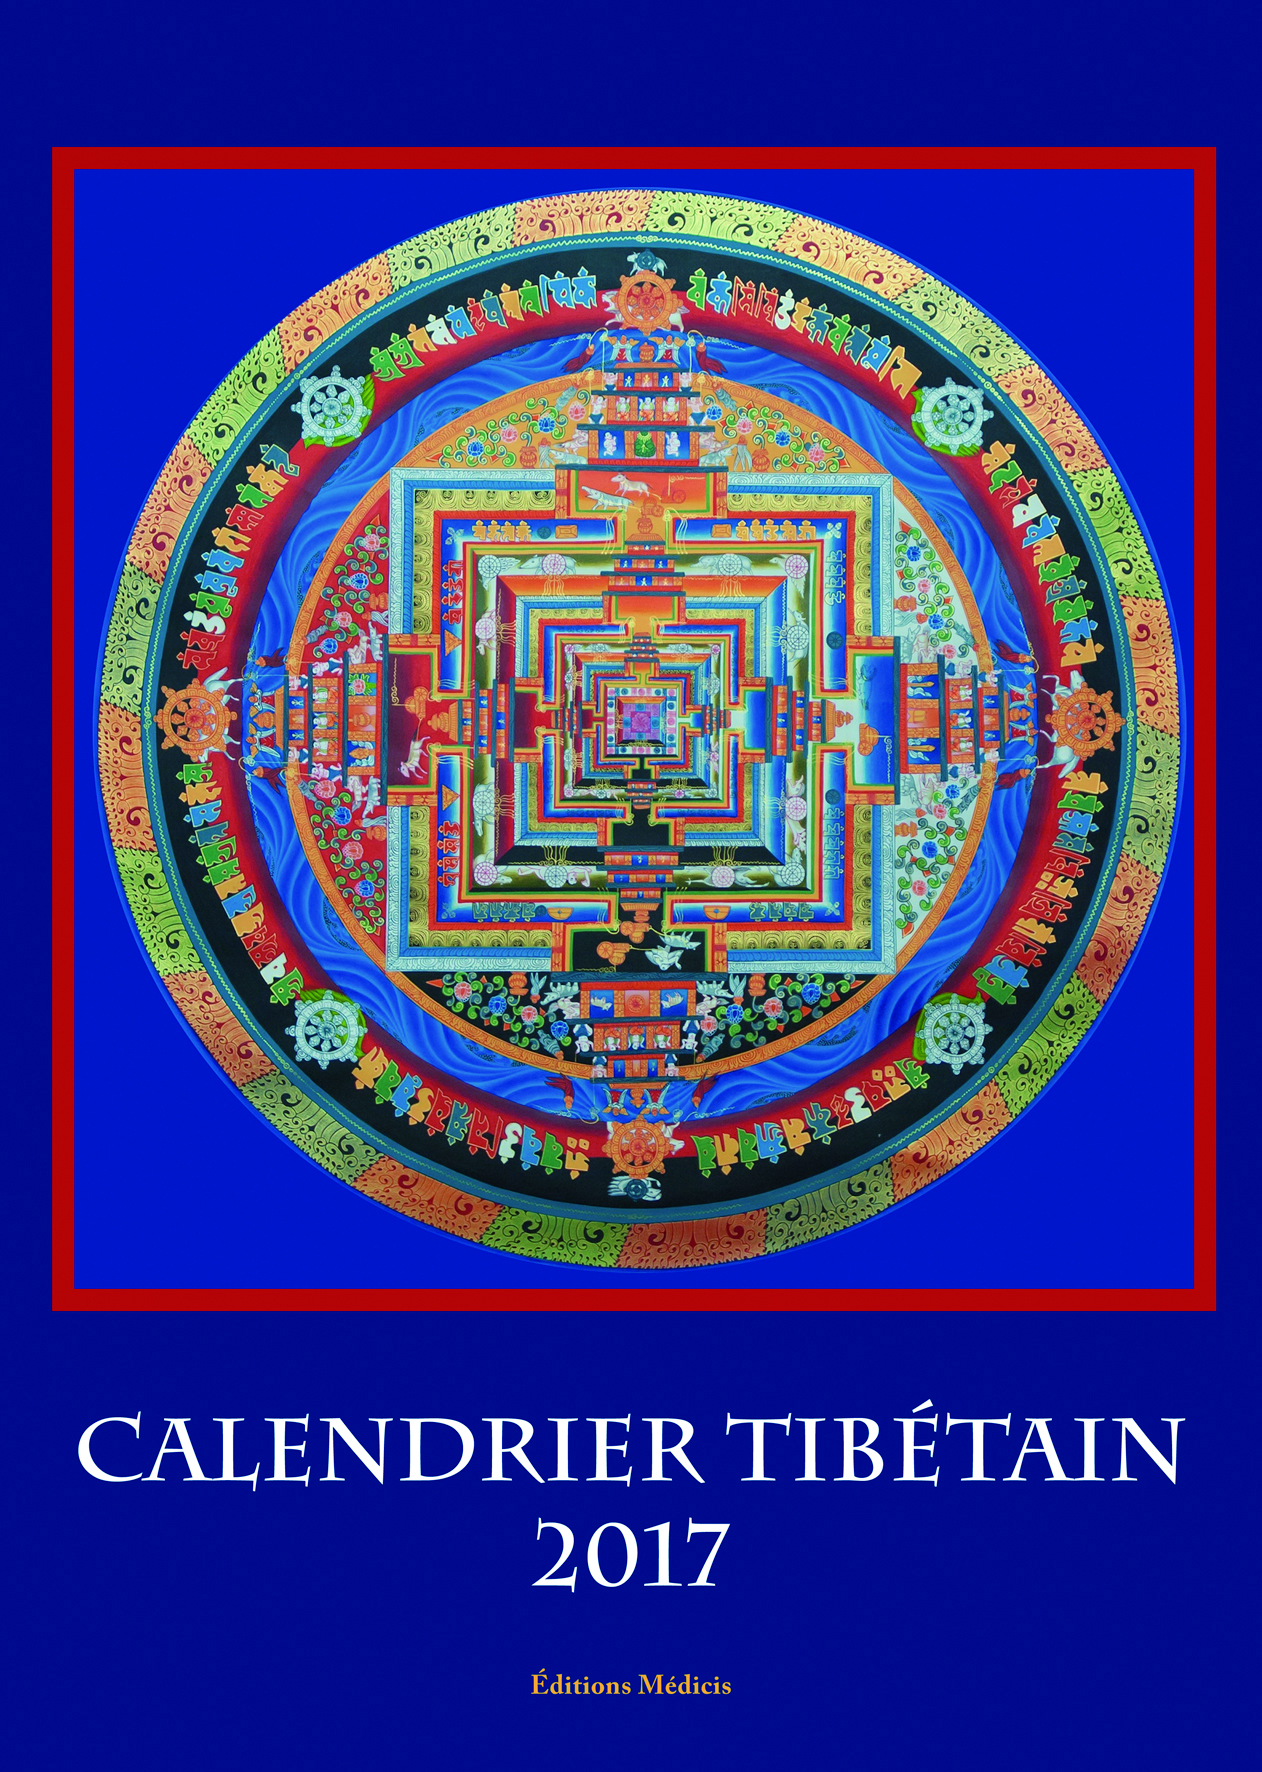 CALENDRIER TIBETAIN 2017